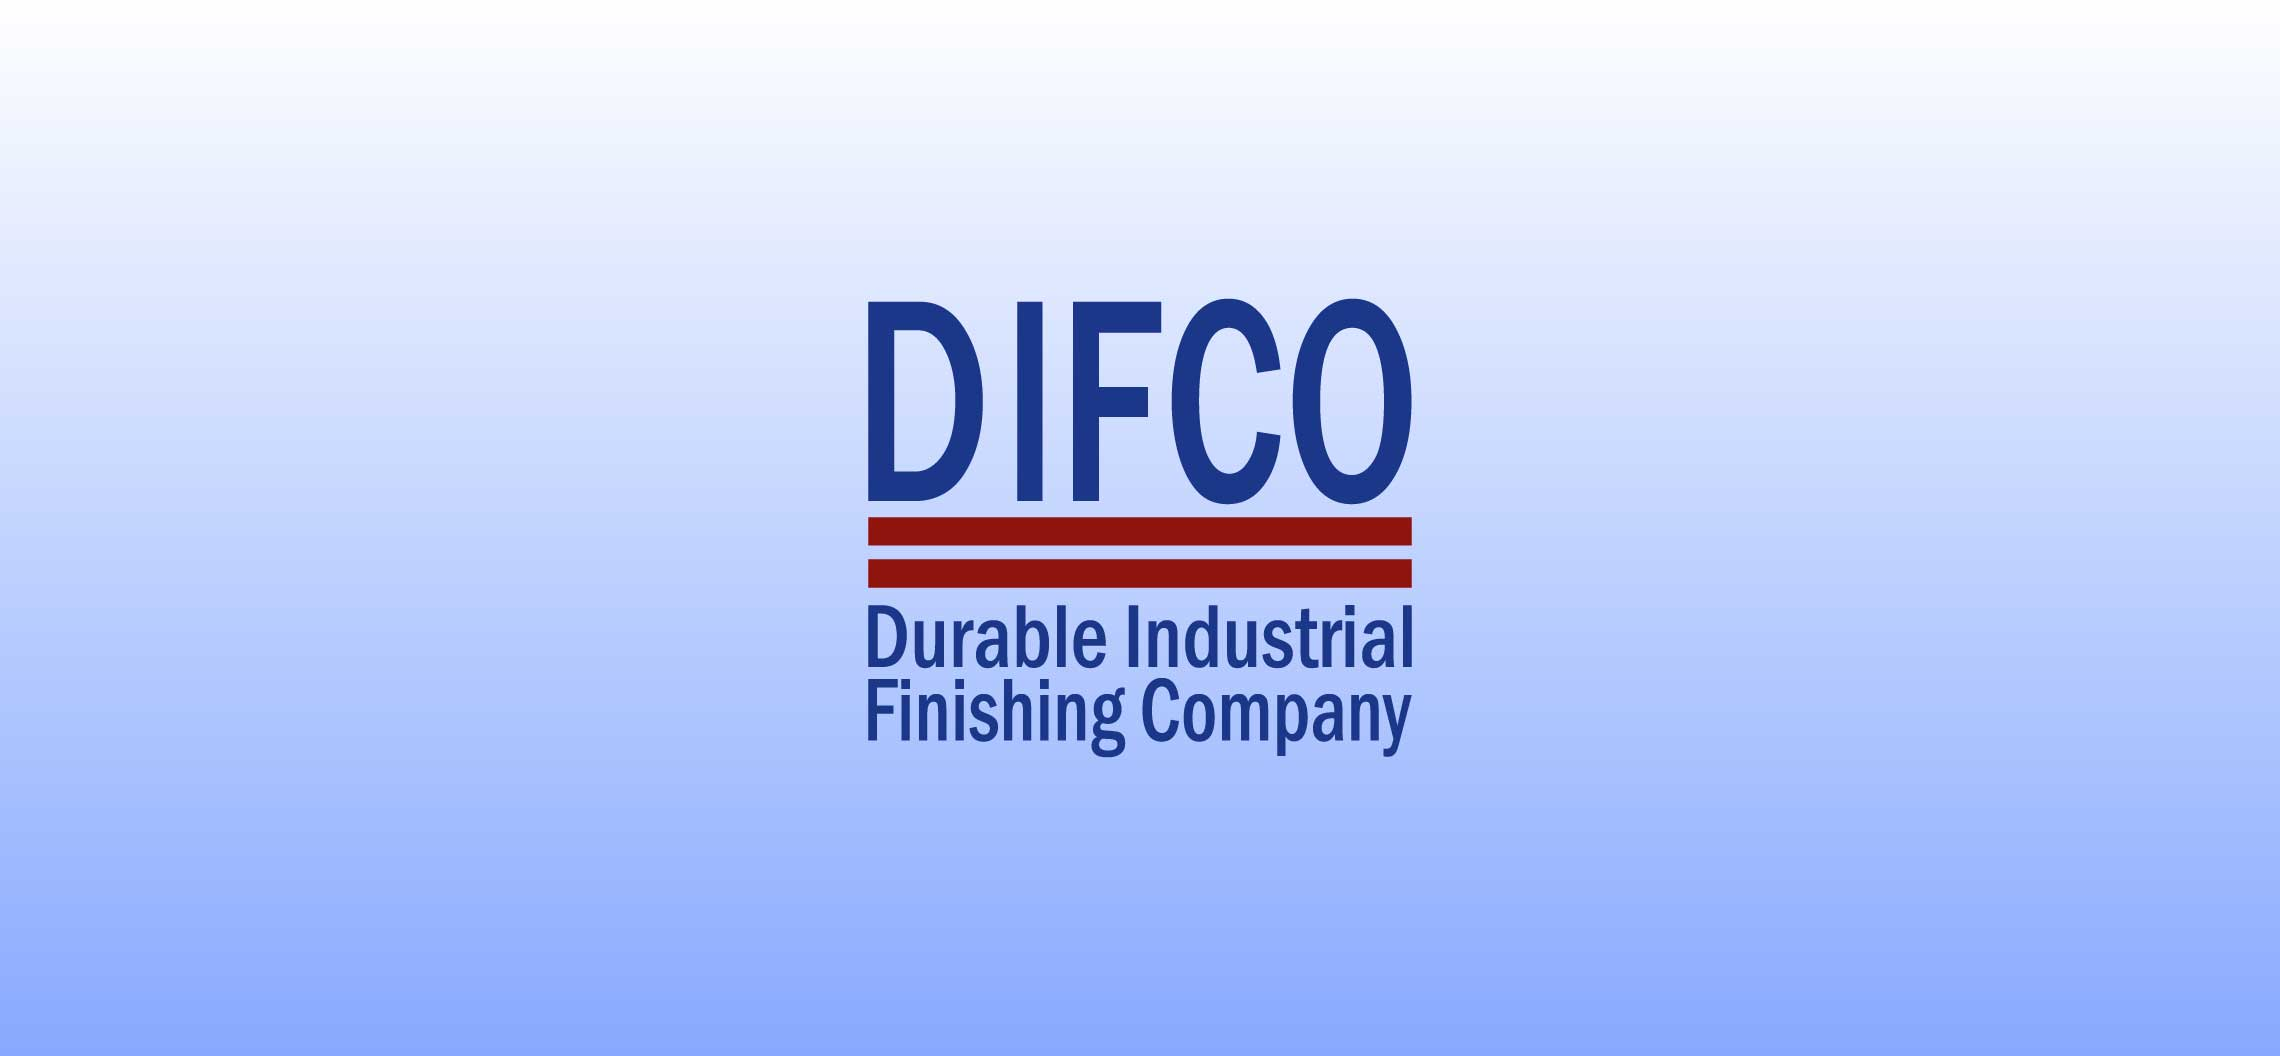 Formerly Dixie Industrial Finishing, DIFCO has designed a new logo to go with the name change to Durable Industrial Finishing Company.